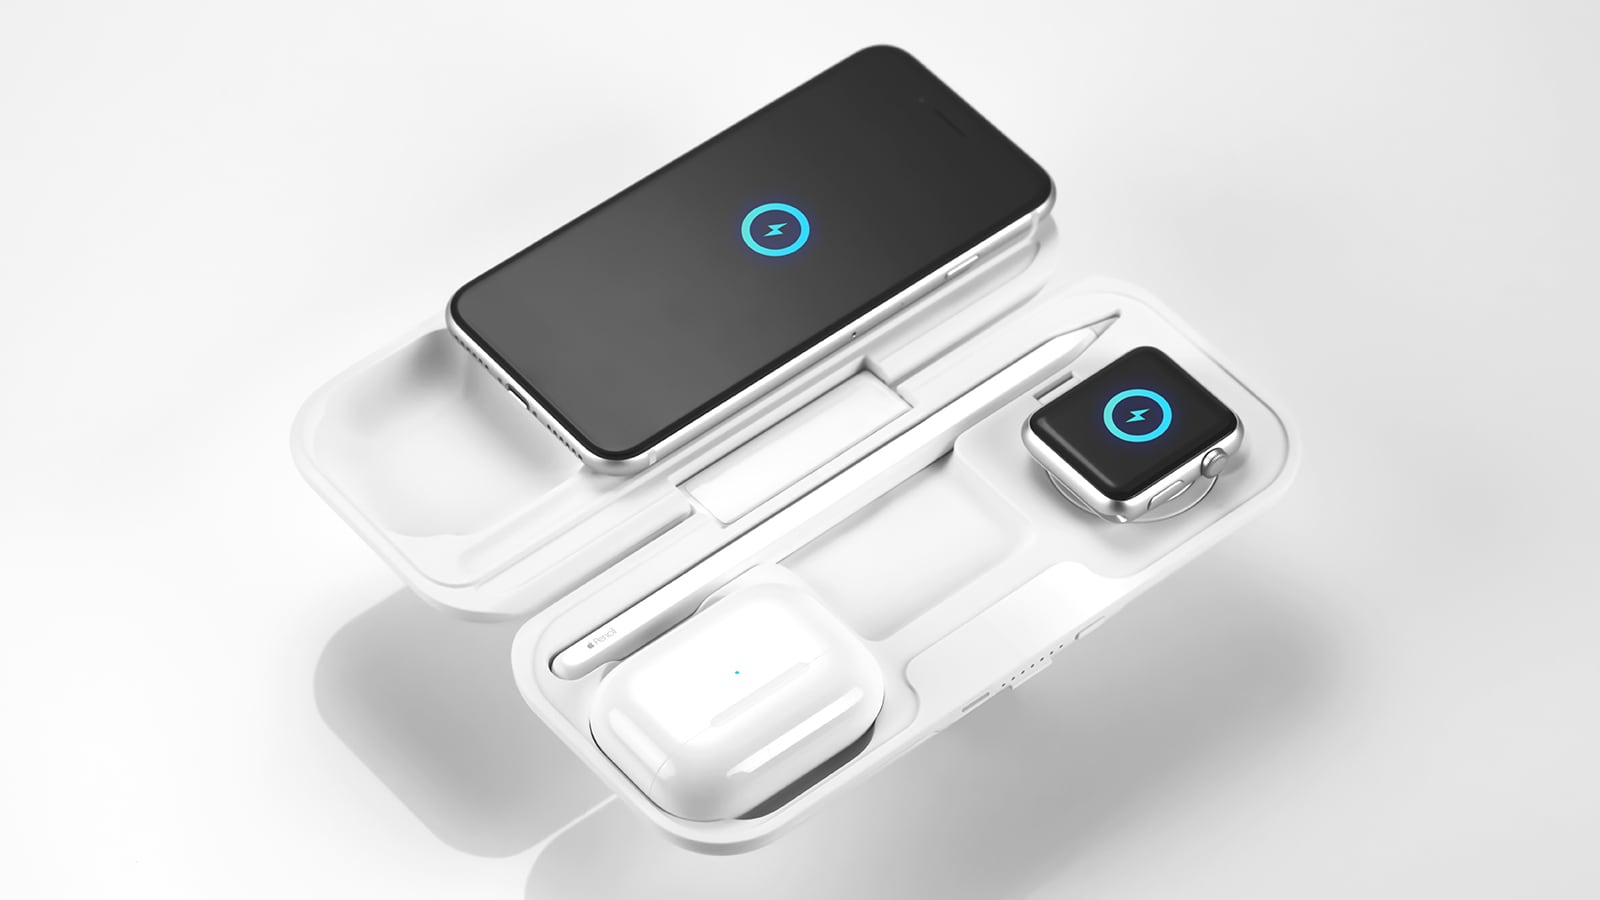 MOMAX Airbox Wireless Power Bank for Apple Devices